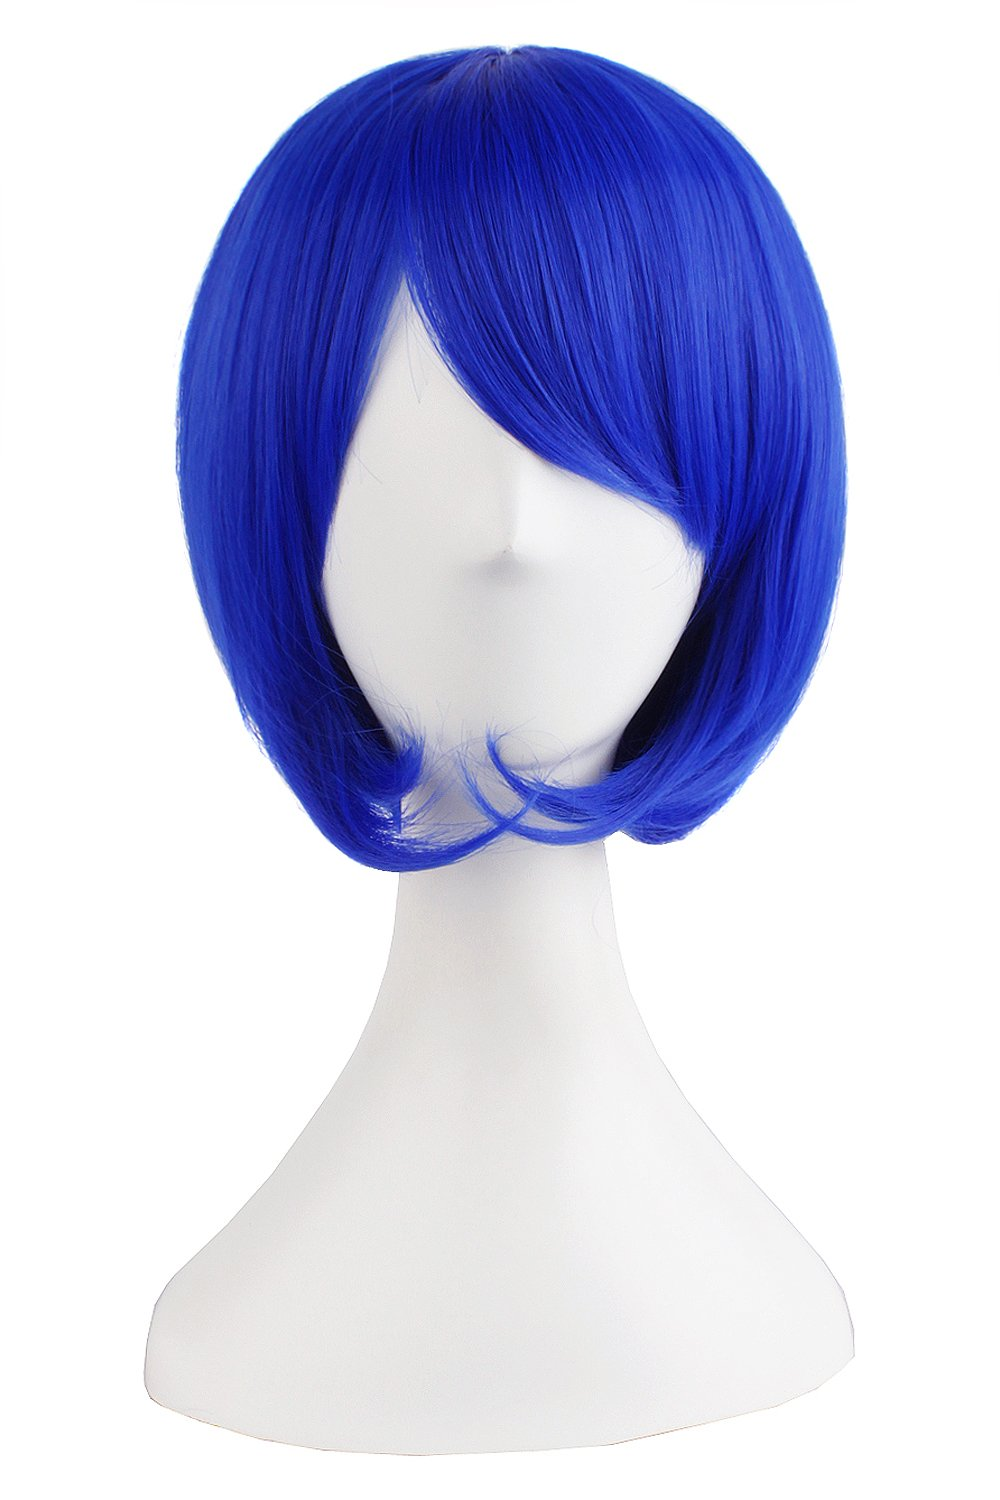 MapofBeauty Fashion Girl Natural Short Straight Wigs Diagonal Bangs Wigs-Navy Blue-Ladies by MapofBeauty